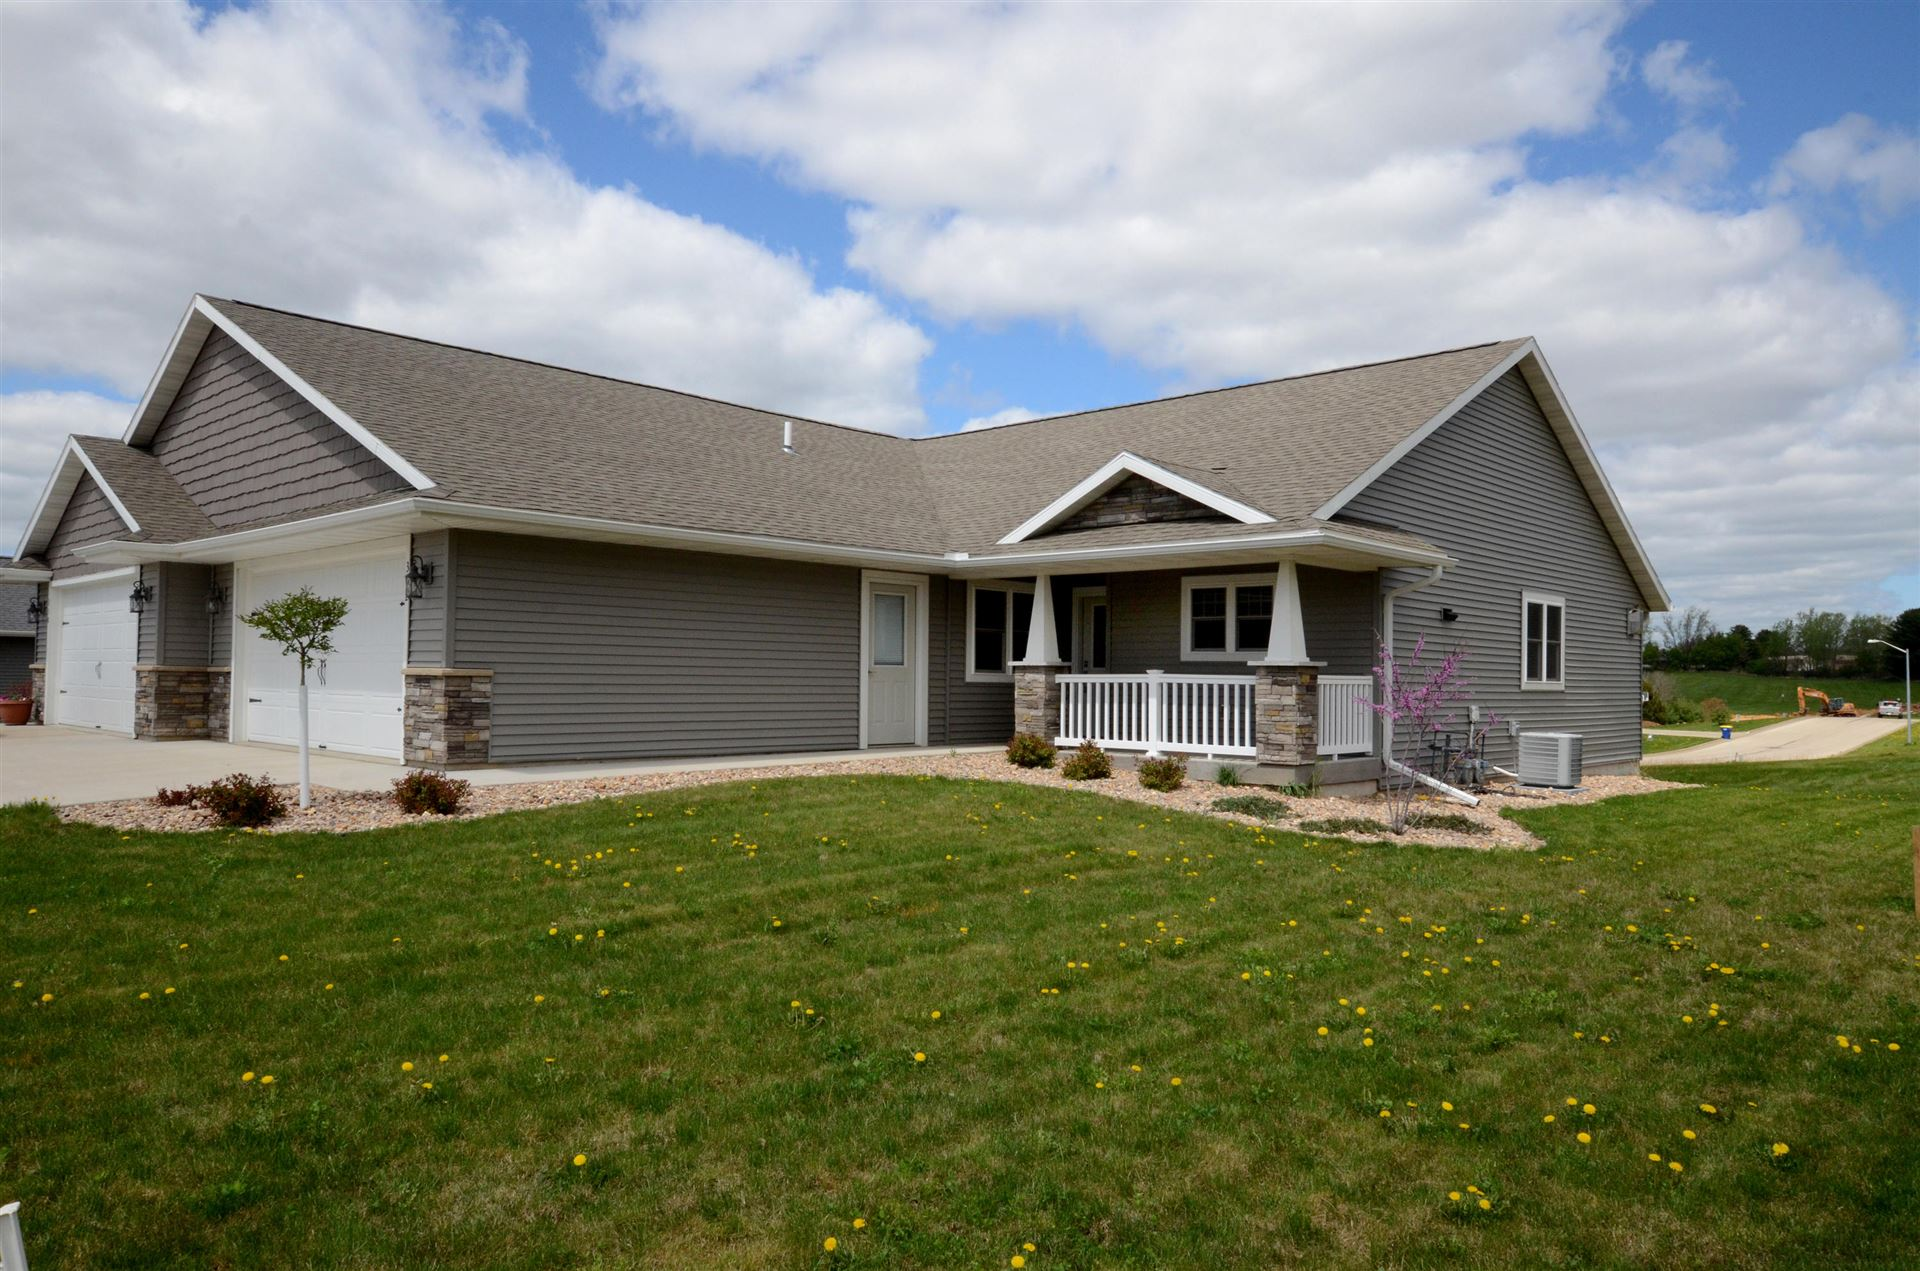 312 16TH FAIRWAY CIR, Viroqua, WI 54665 - MLS#: 1738855